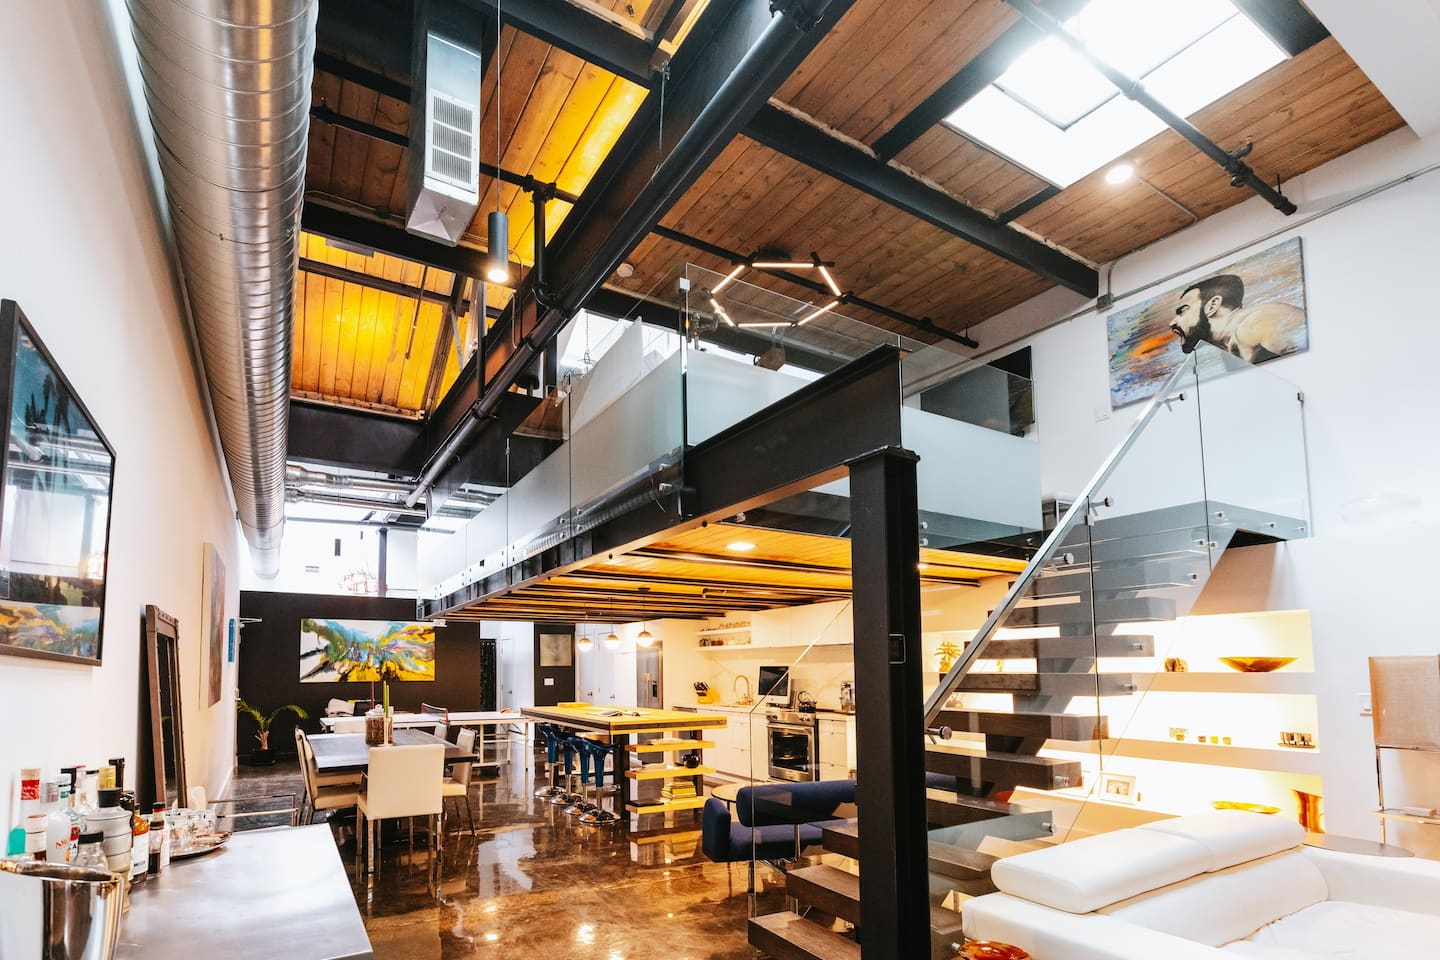 The Coolest Airbnbs in Toronto for 2021 – From Luxury Lofts to Tiny Homes